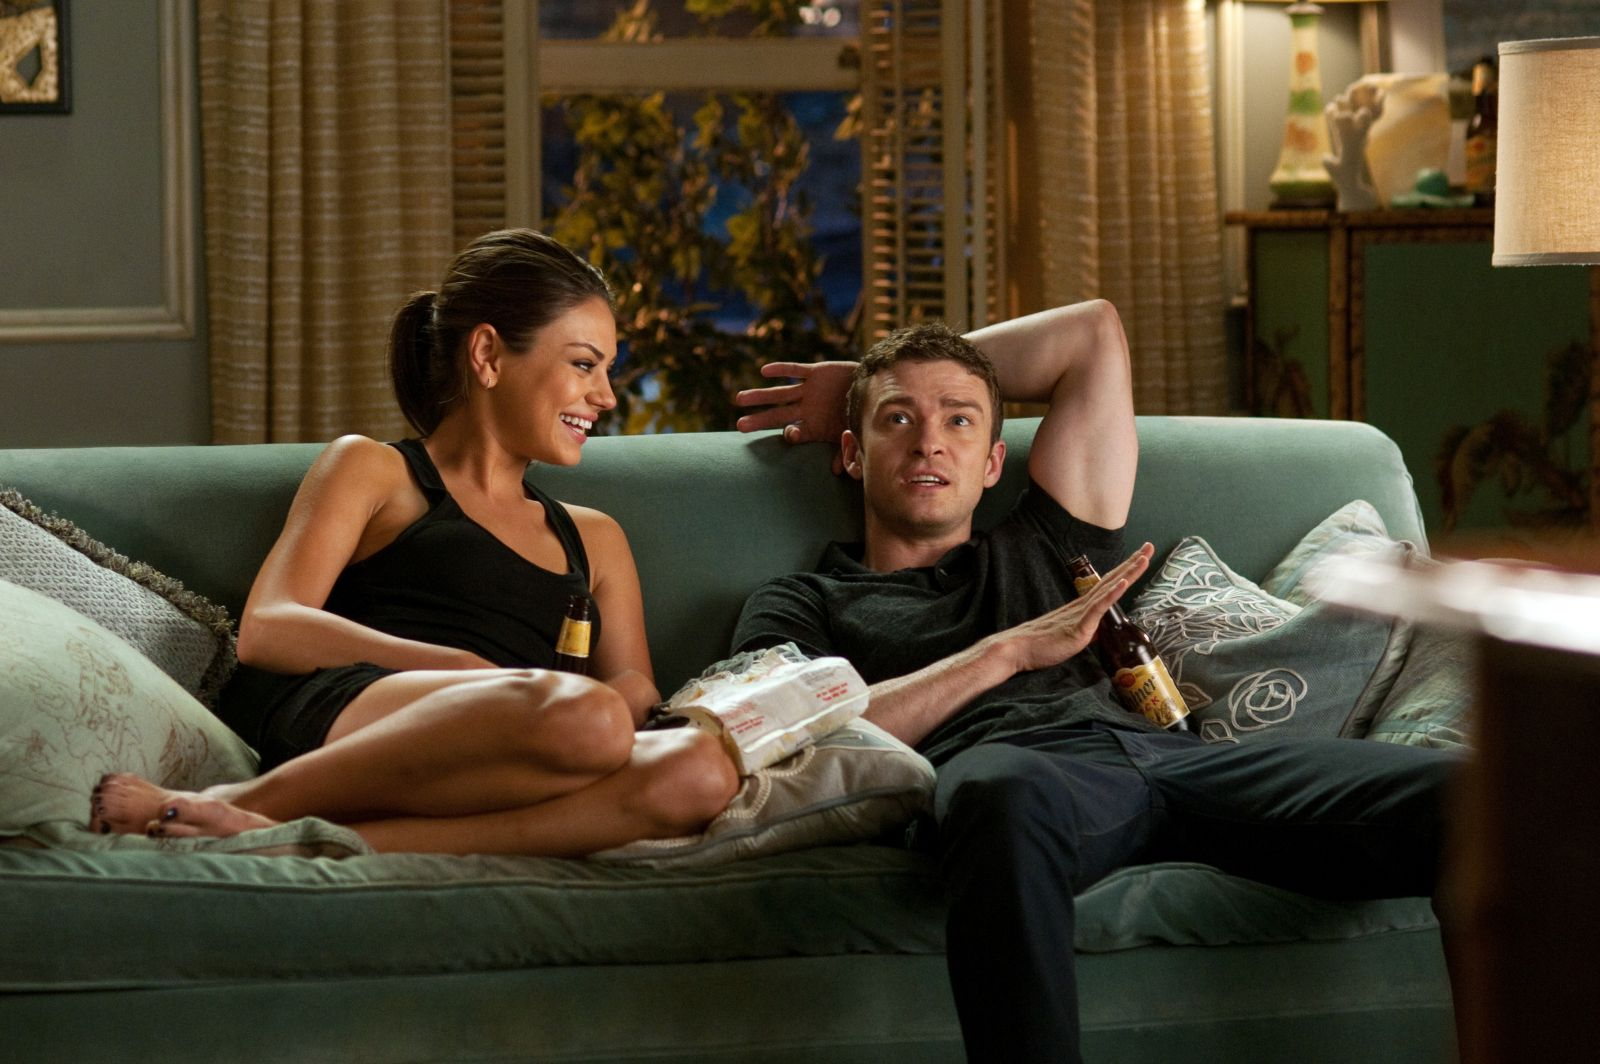 the best romantic comedy for girls night - Friends With Benefits